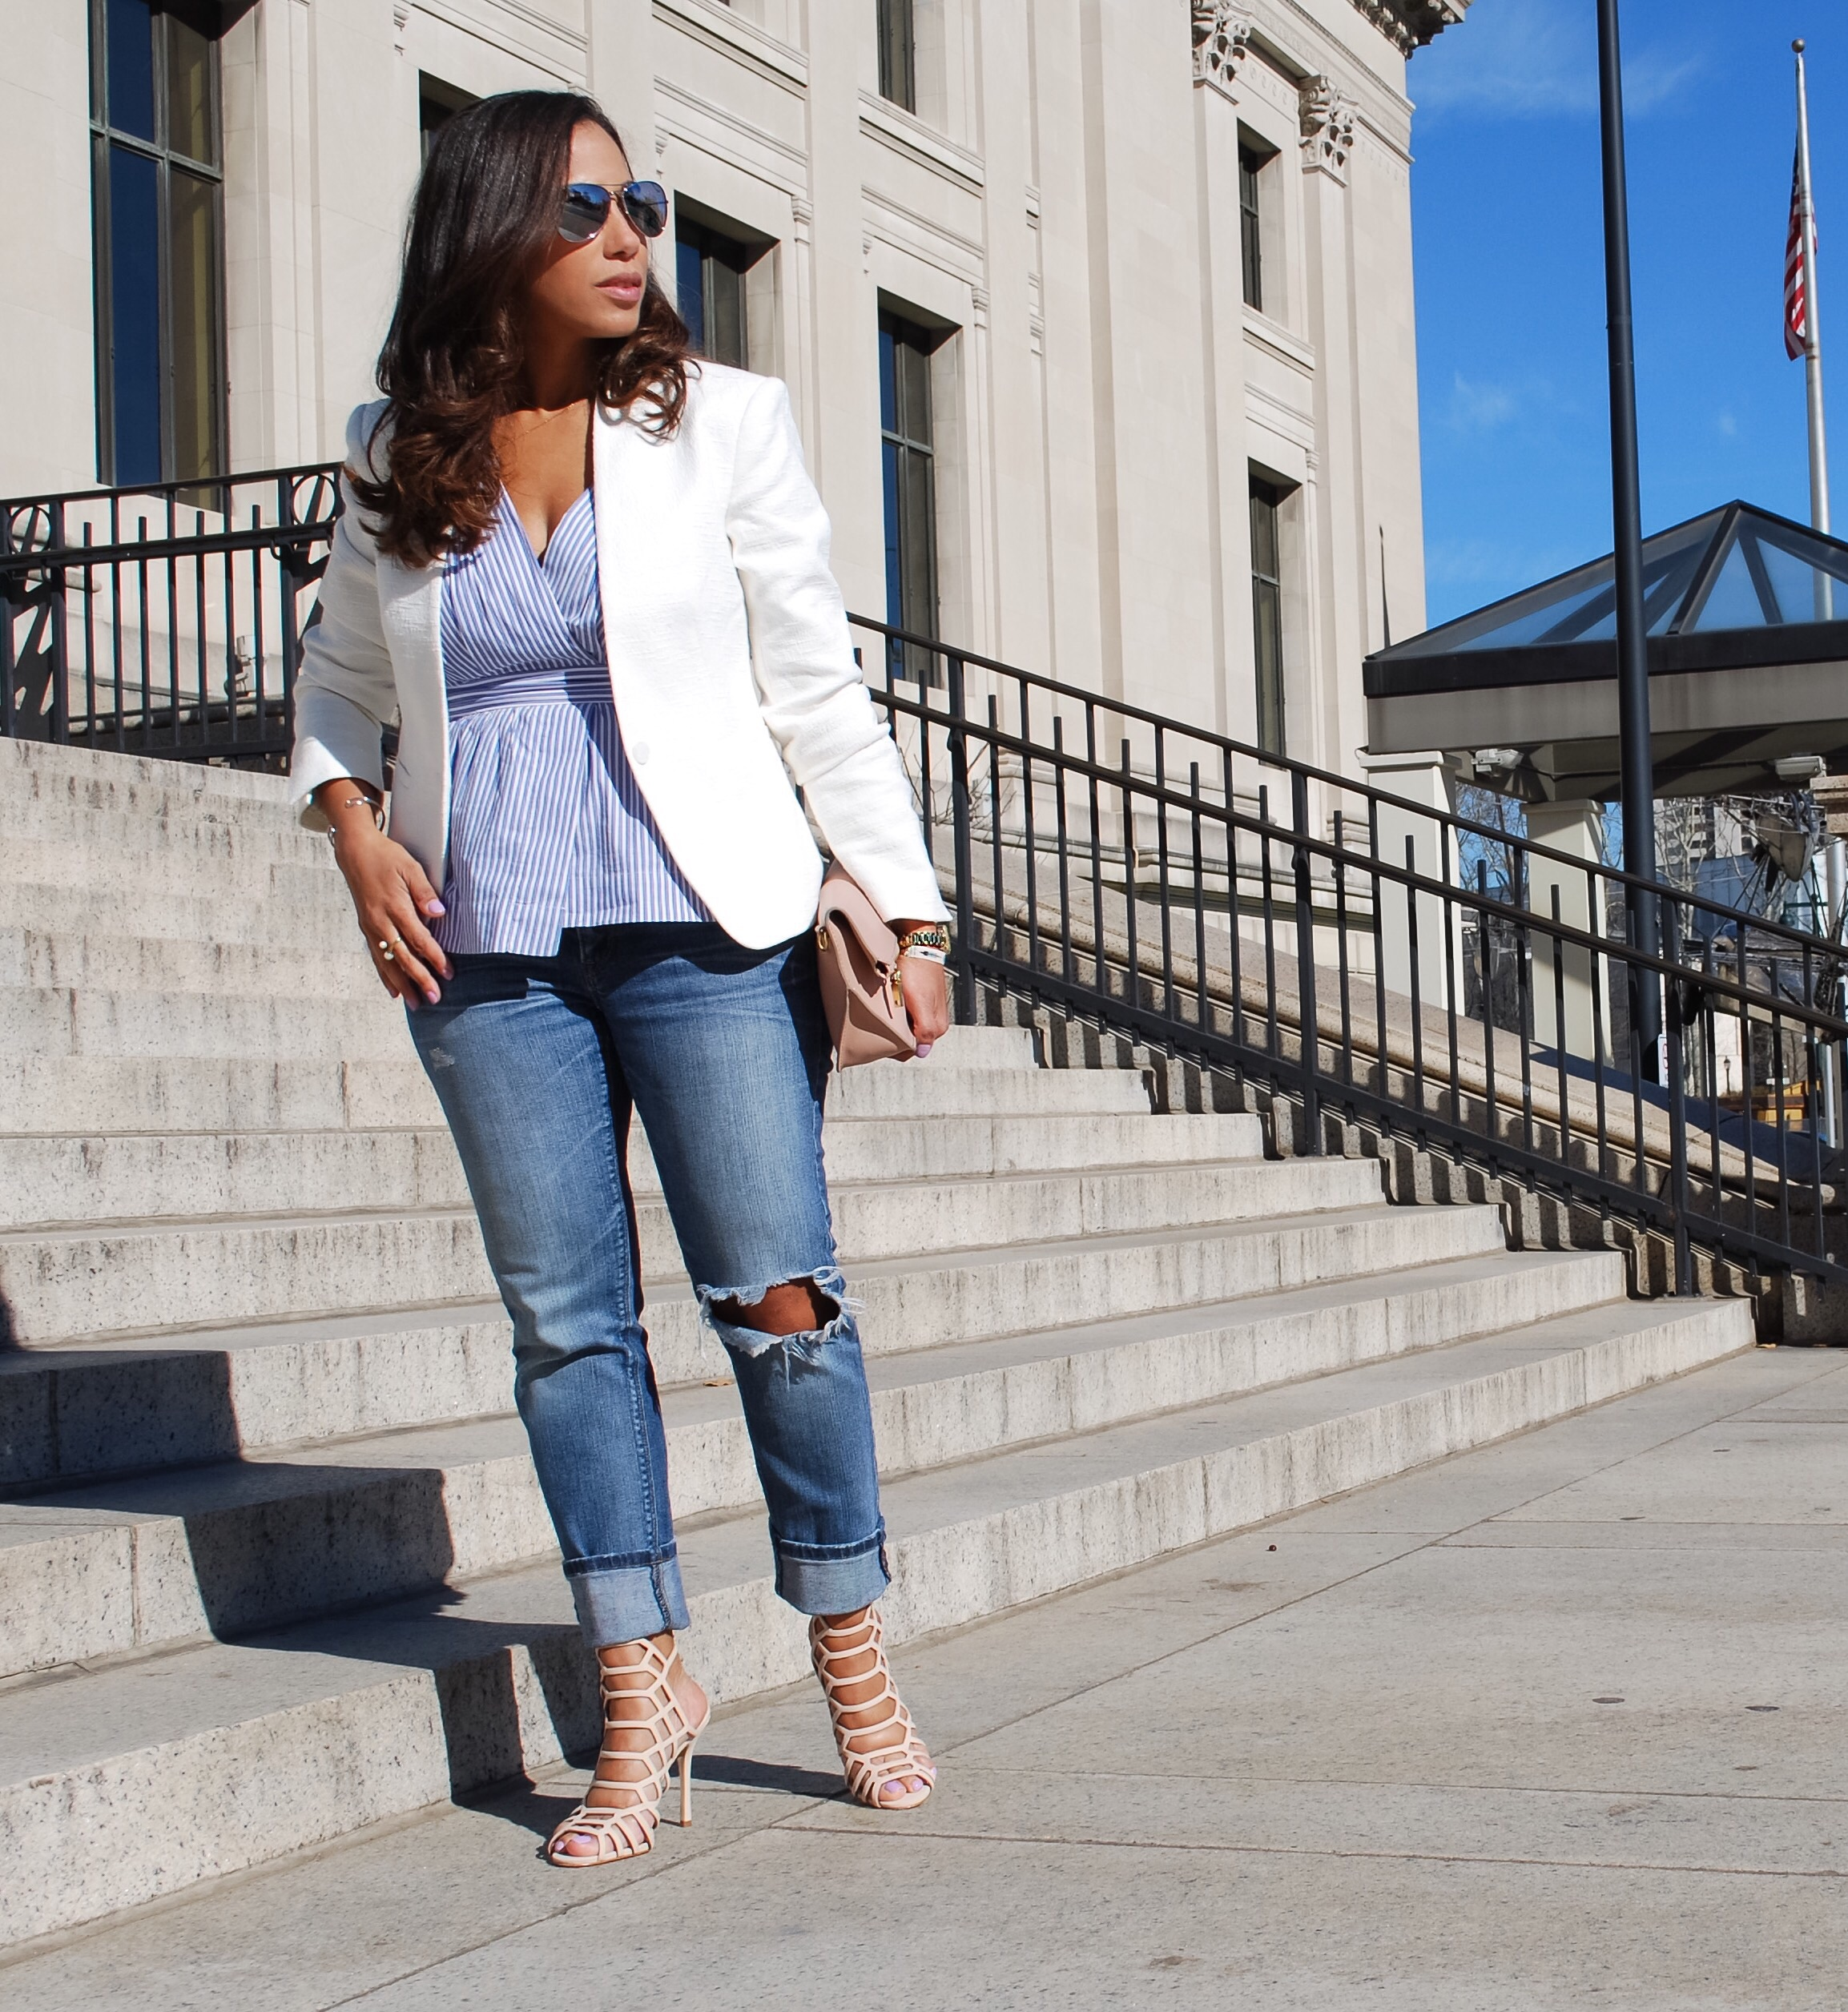 This Season's Gold // Striped Peplum and Boyfriend jeans